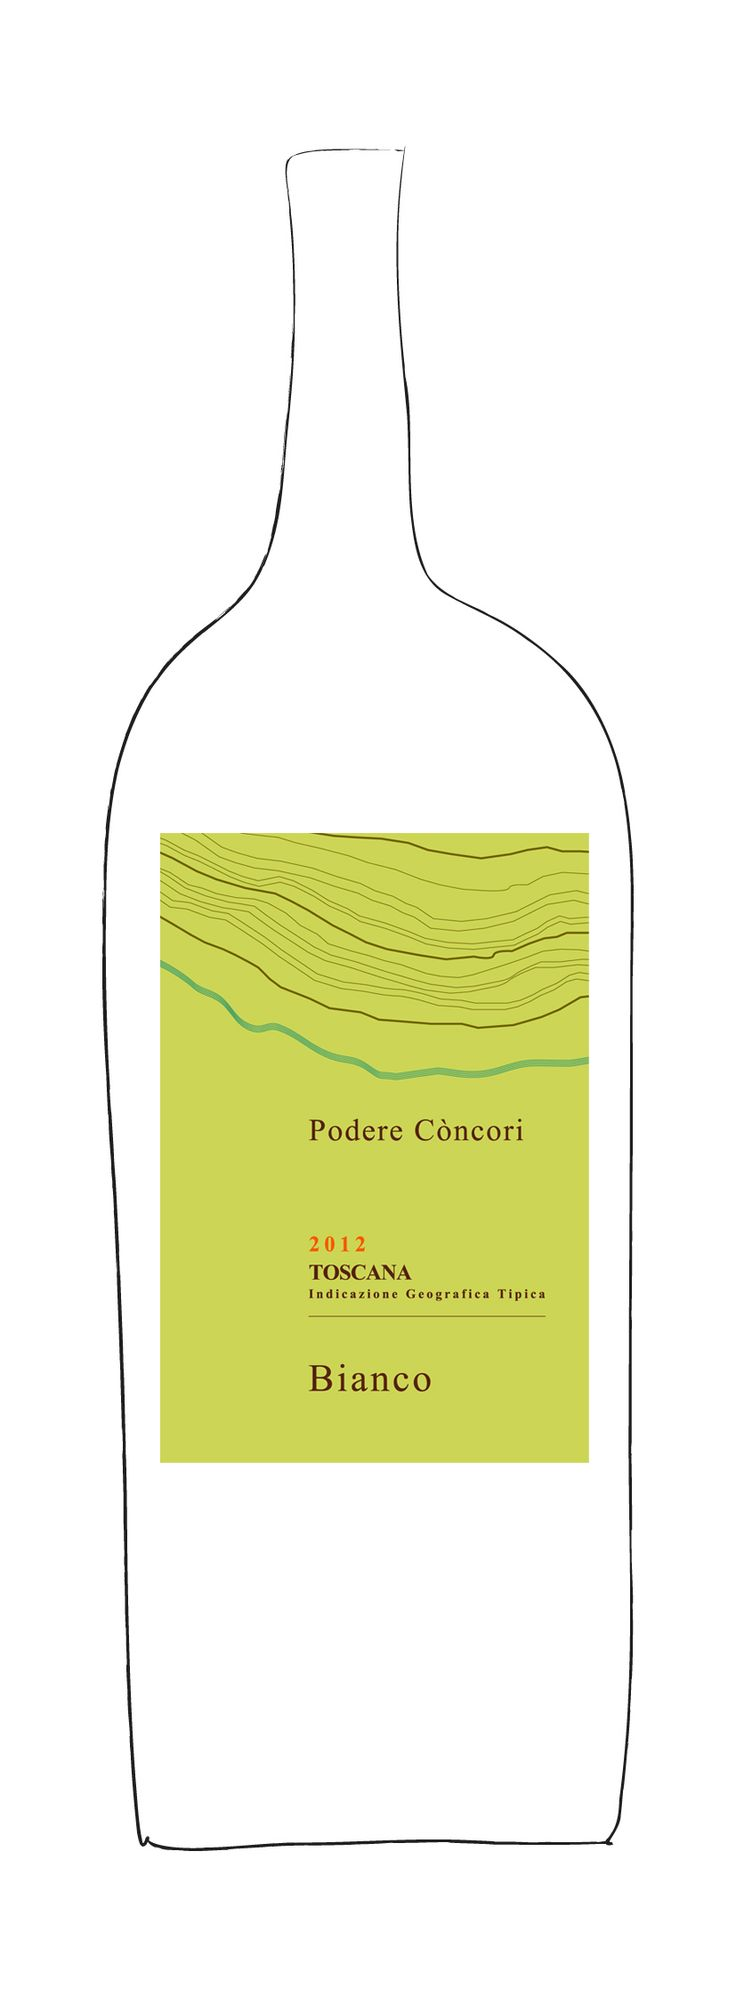 Bianco 2012, Podere Concori - The constant breeze blowing from the Apennines and the specific soil composition, marked by sand and shale, make of this wine an authentic expression of our land, reminiscent of Loire valley white wines for its acidity, freshness and elegance. Grape varieties: Pinot Blanc (60%), Chenin Blanc (40%).